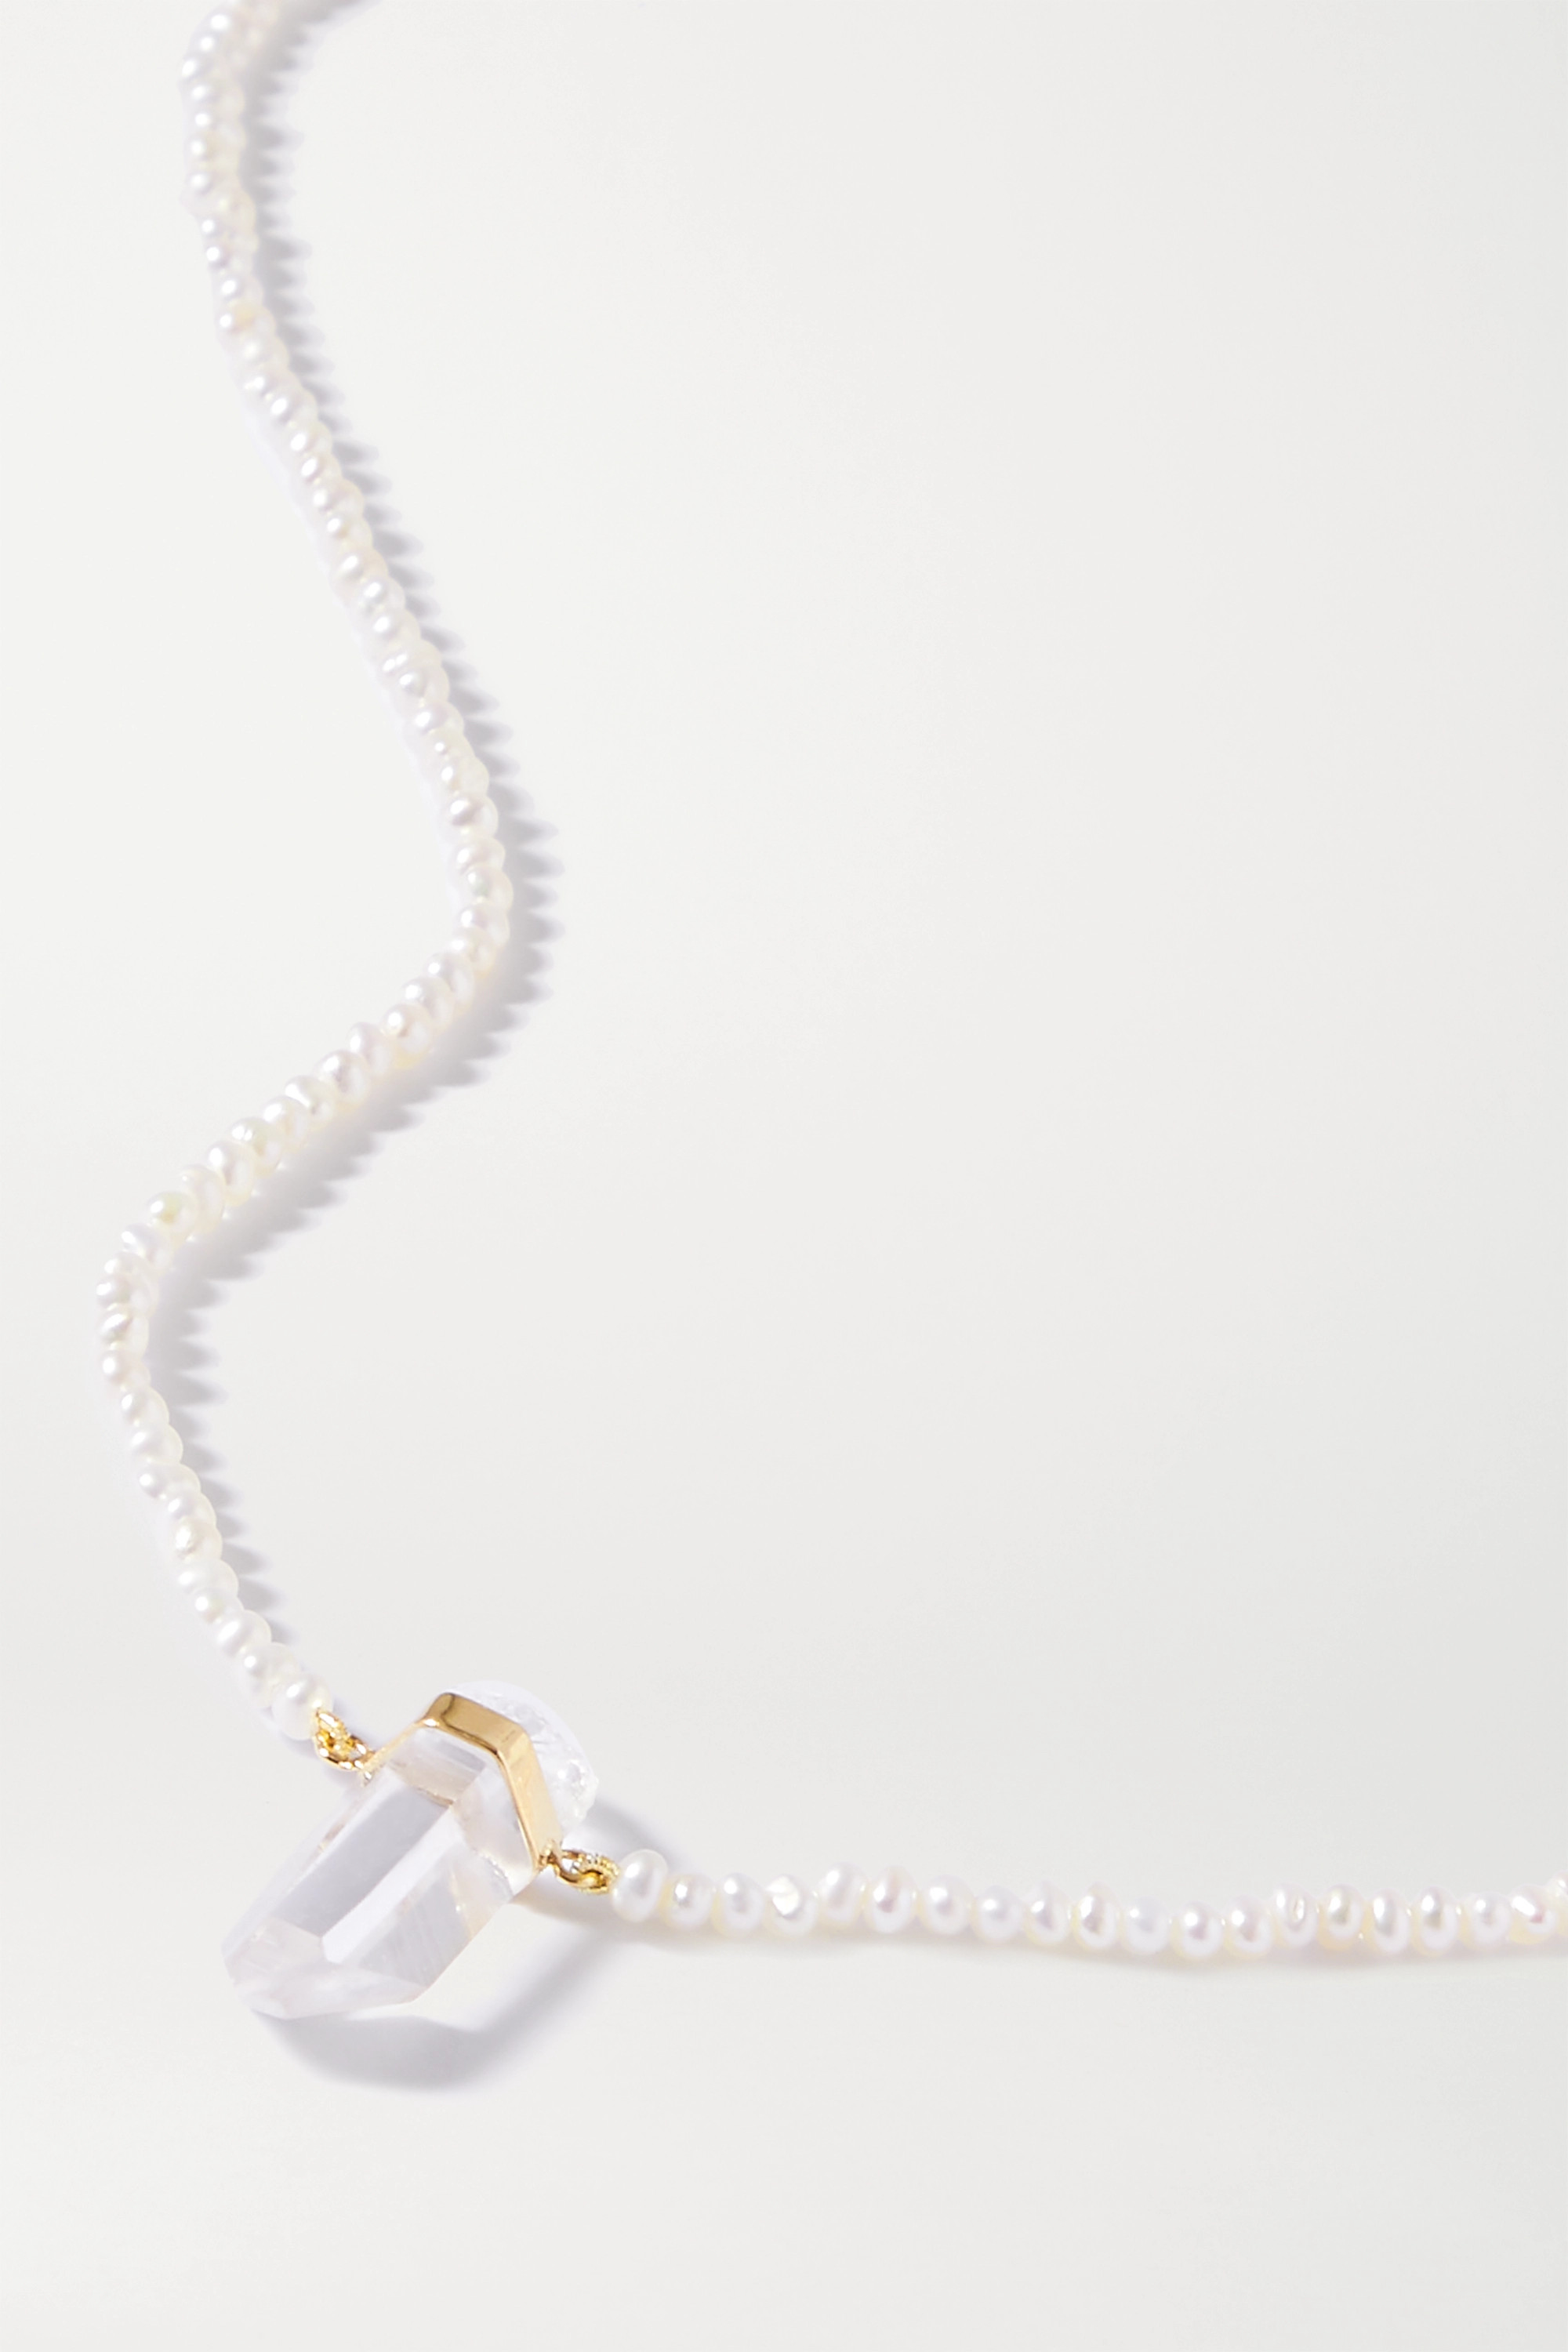 JIA JIA Gold, quartz and pearl necklace